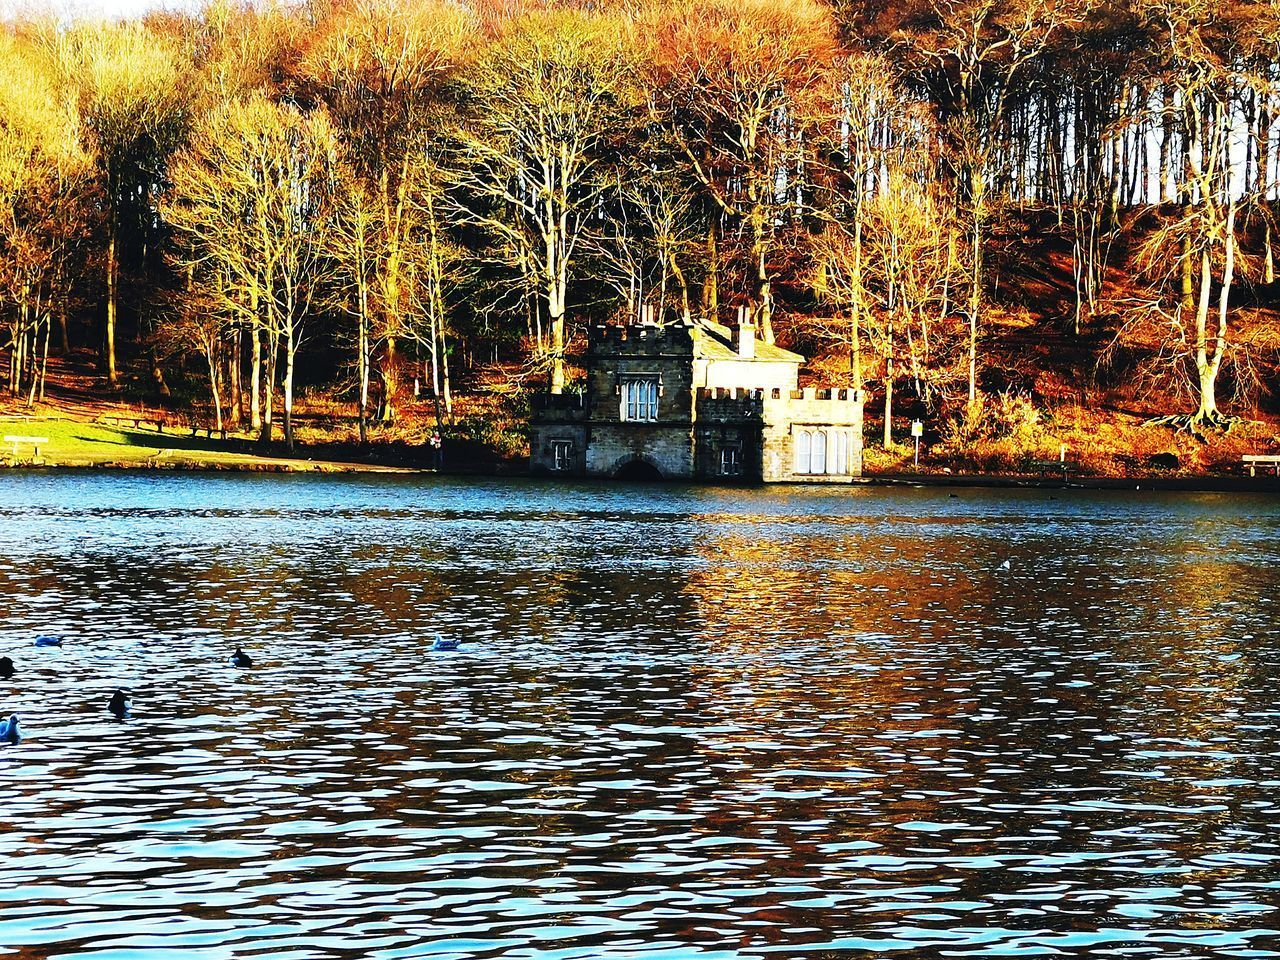 SCENIC VIEW OF LAKE AGAINST BUILDING